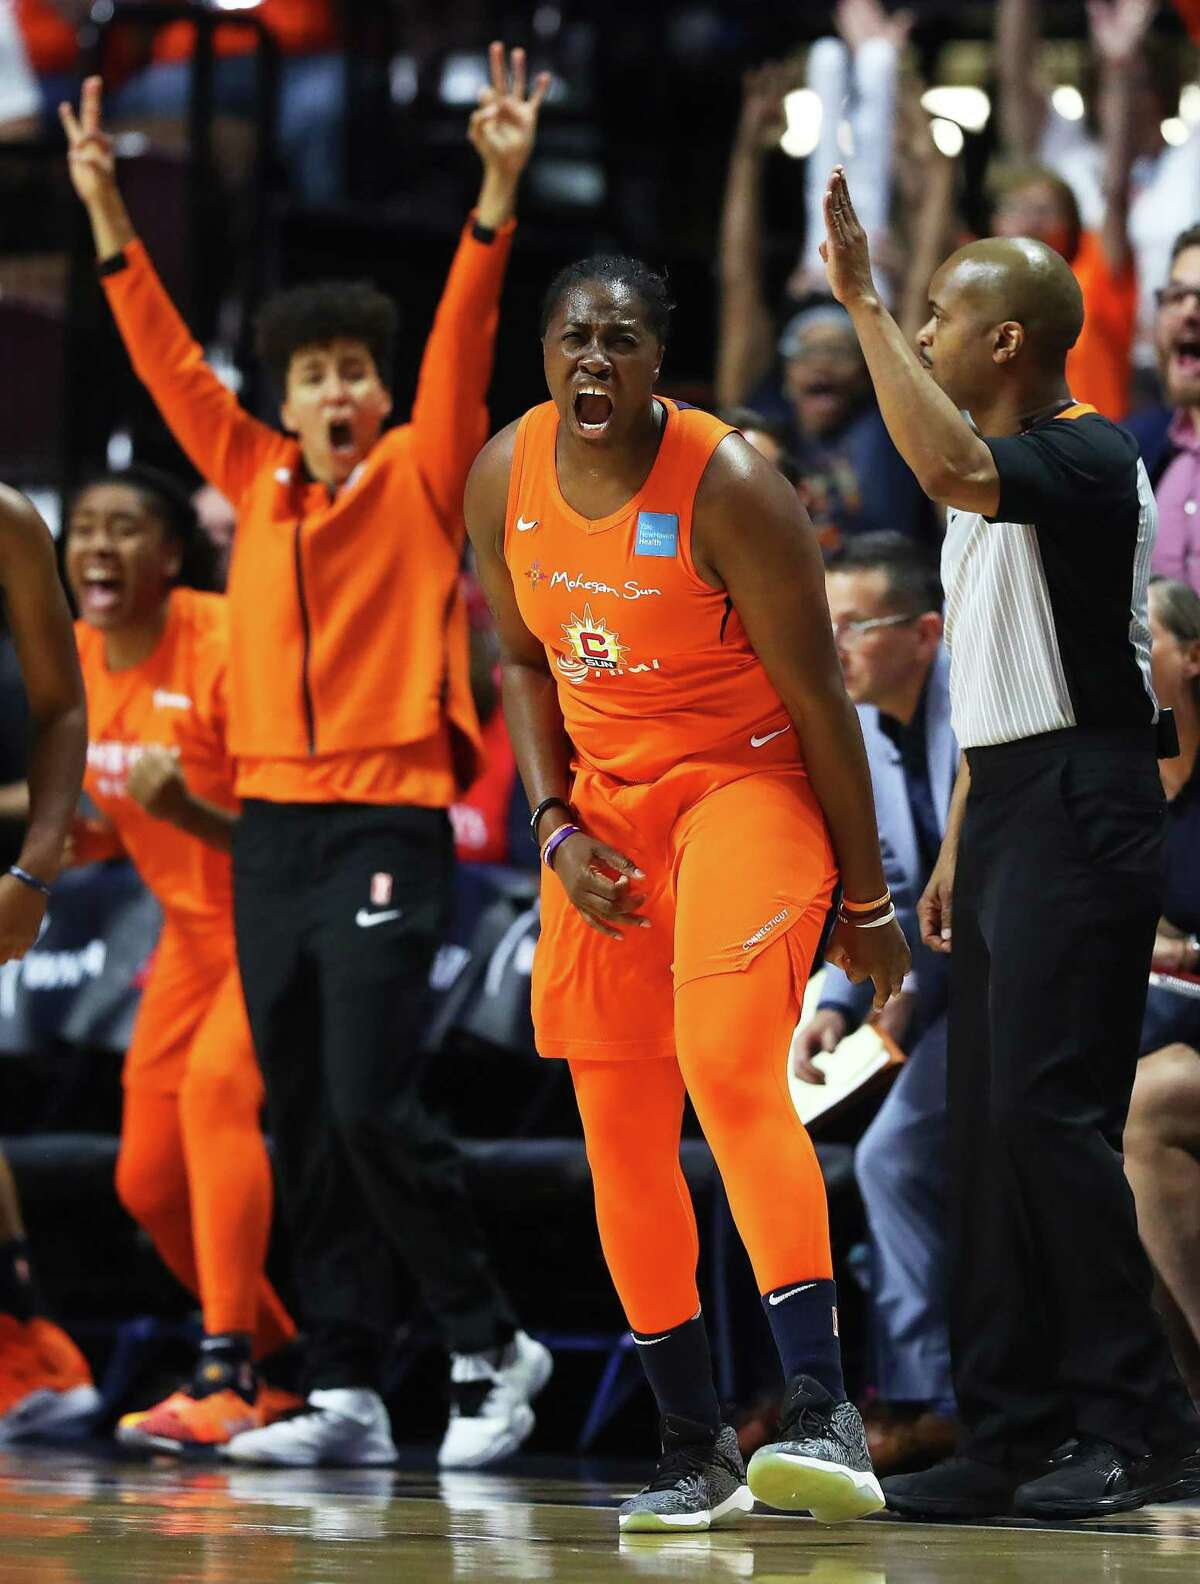 UNCASVILLE, CONNECTICUT - OCTOBER 08: Shekinna Stricklen #40 of Connecticut Sun celebrates after scoring during the first quarter of Game Four of the 2019 WNBA Finals between the Washington Mystics and Connecticut Sun at Mohegan Sun Arena on October 08, 2019 in Uncasville, Connecticut. (Photo by Maddie Meyer/Getty Images)